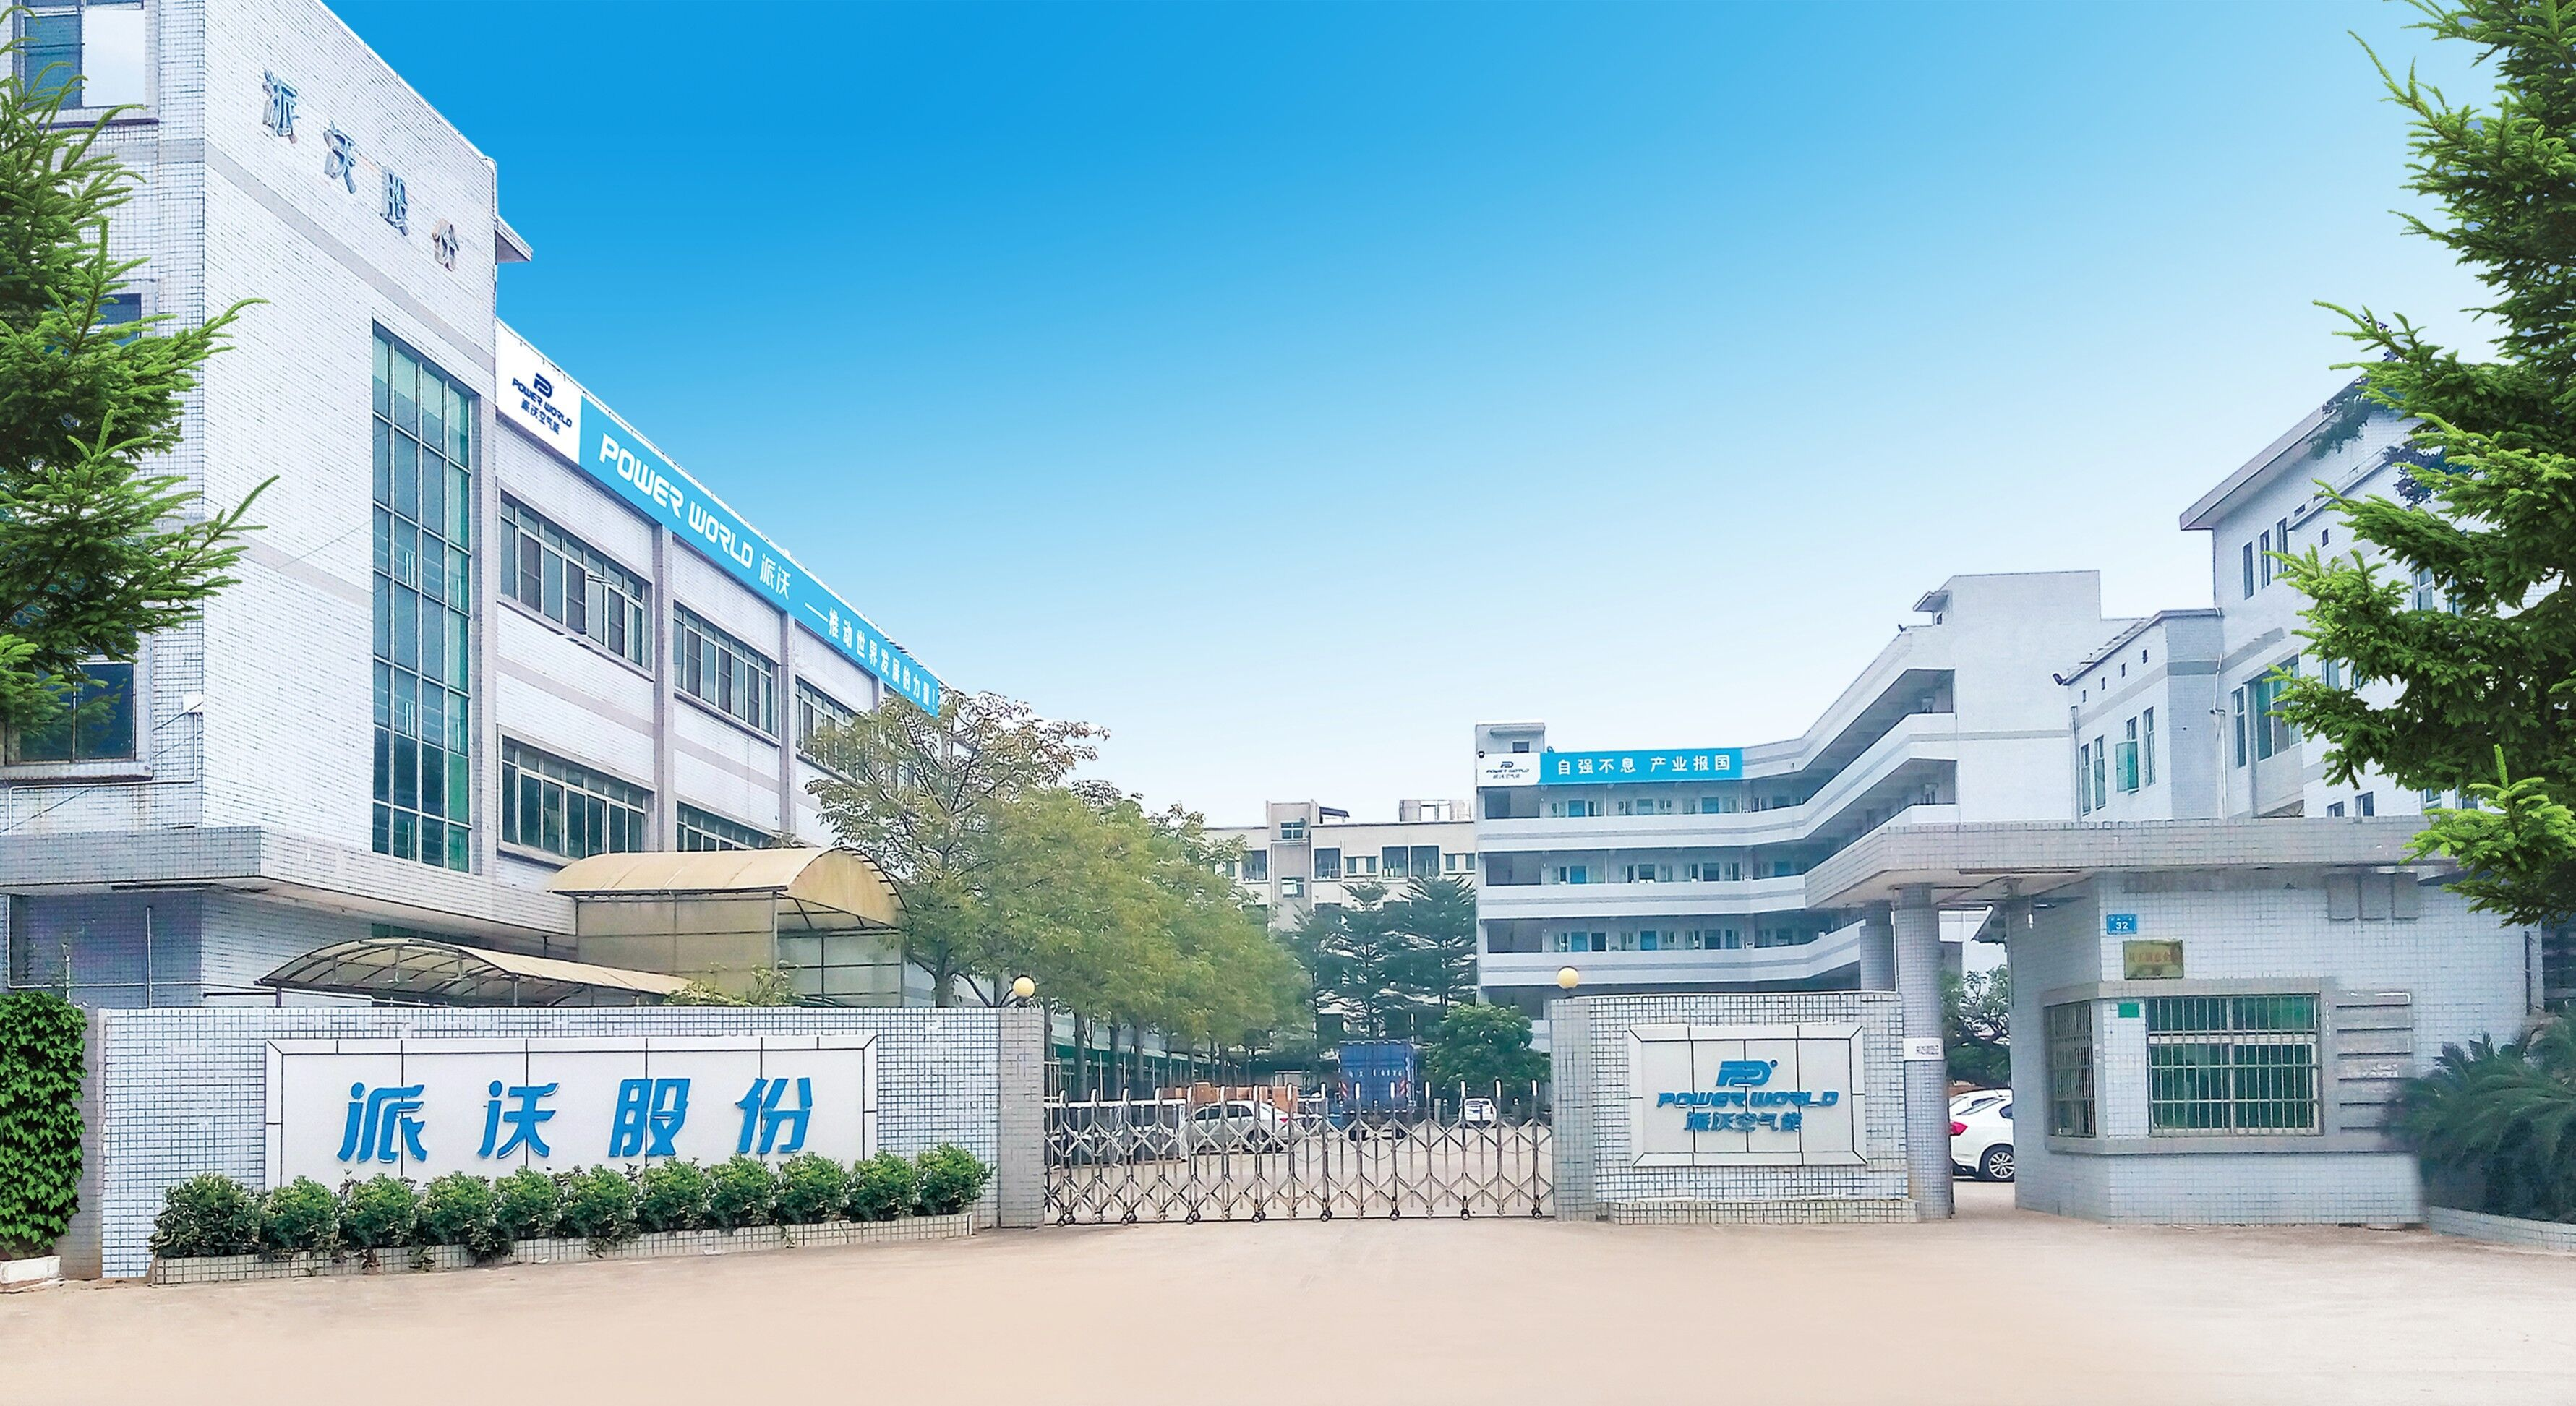 Power World Heat Pump Dongguan Factory View Successfully Publicly Listed On The Neeq In 2016 With Stock Code 870092 Covering An Area Of 30000 M2 In Dongguan